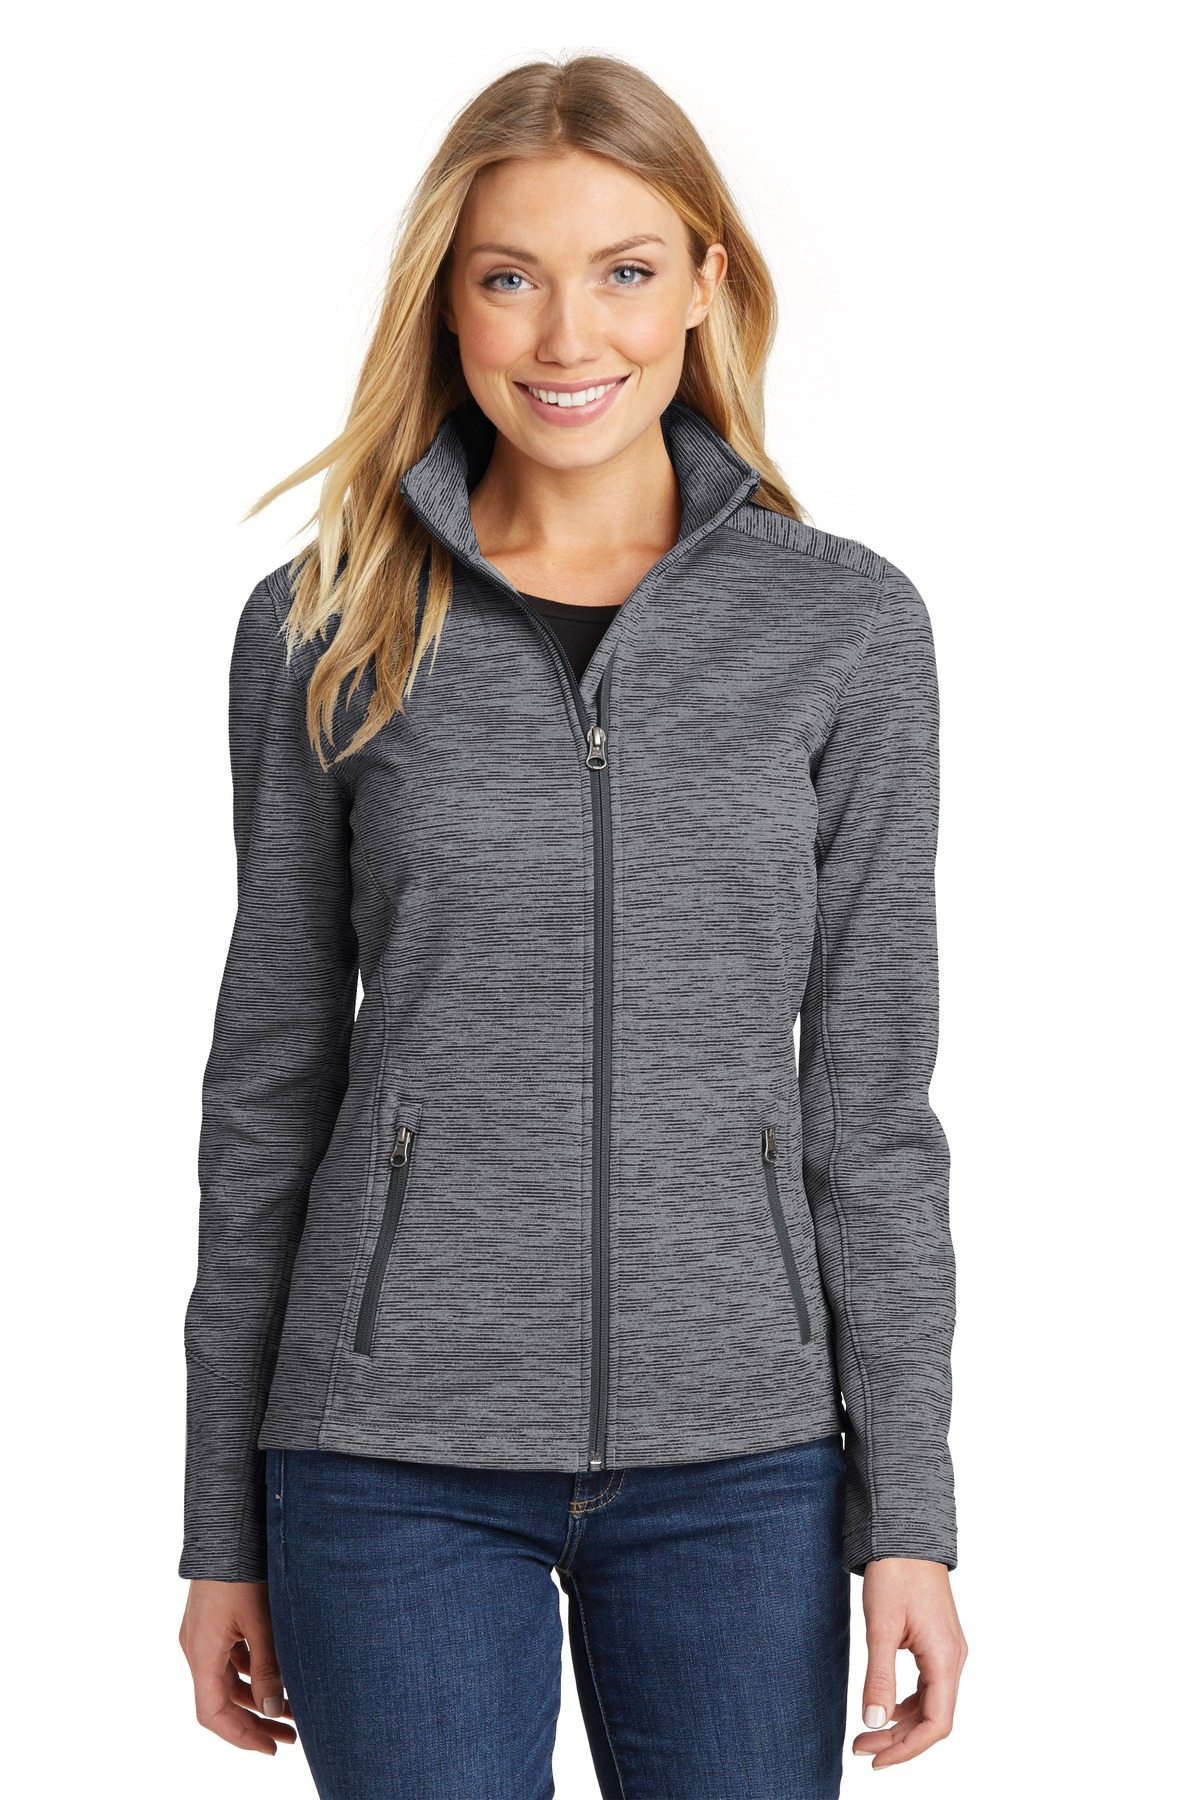 Port Authority L231 - Ladies Digi Stripe Fleece Jacket - Women's ...